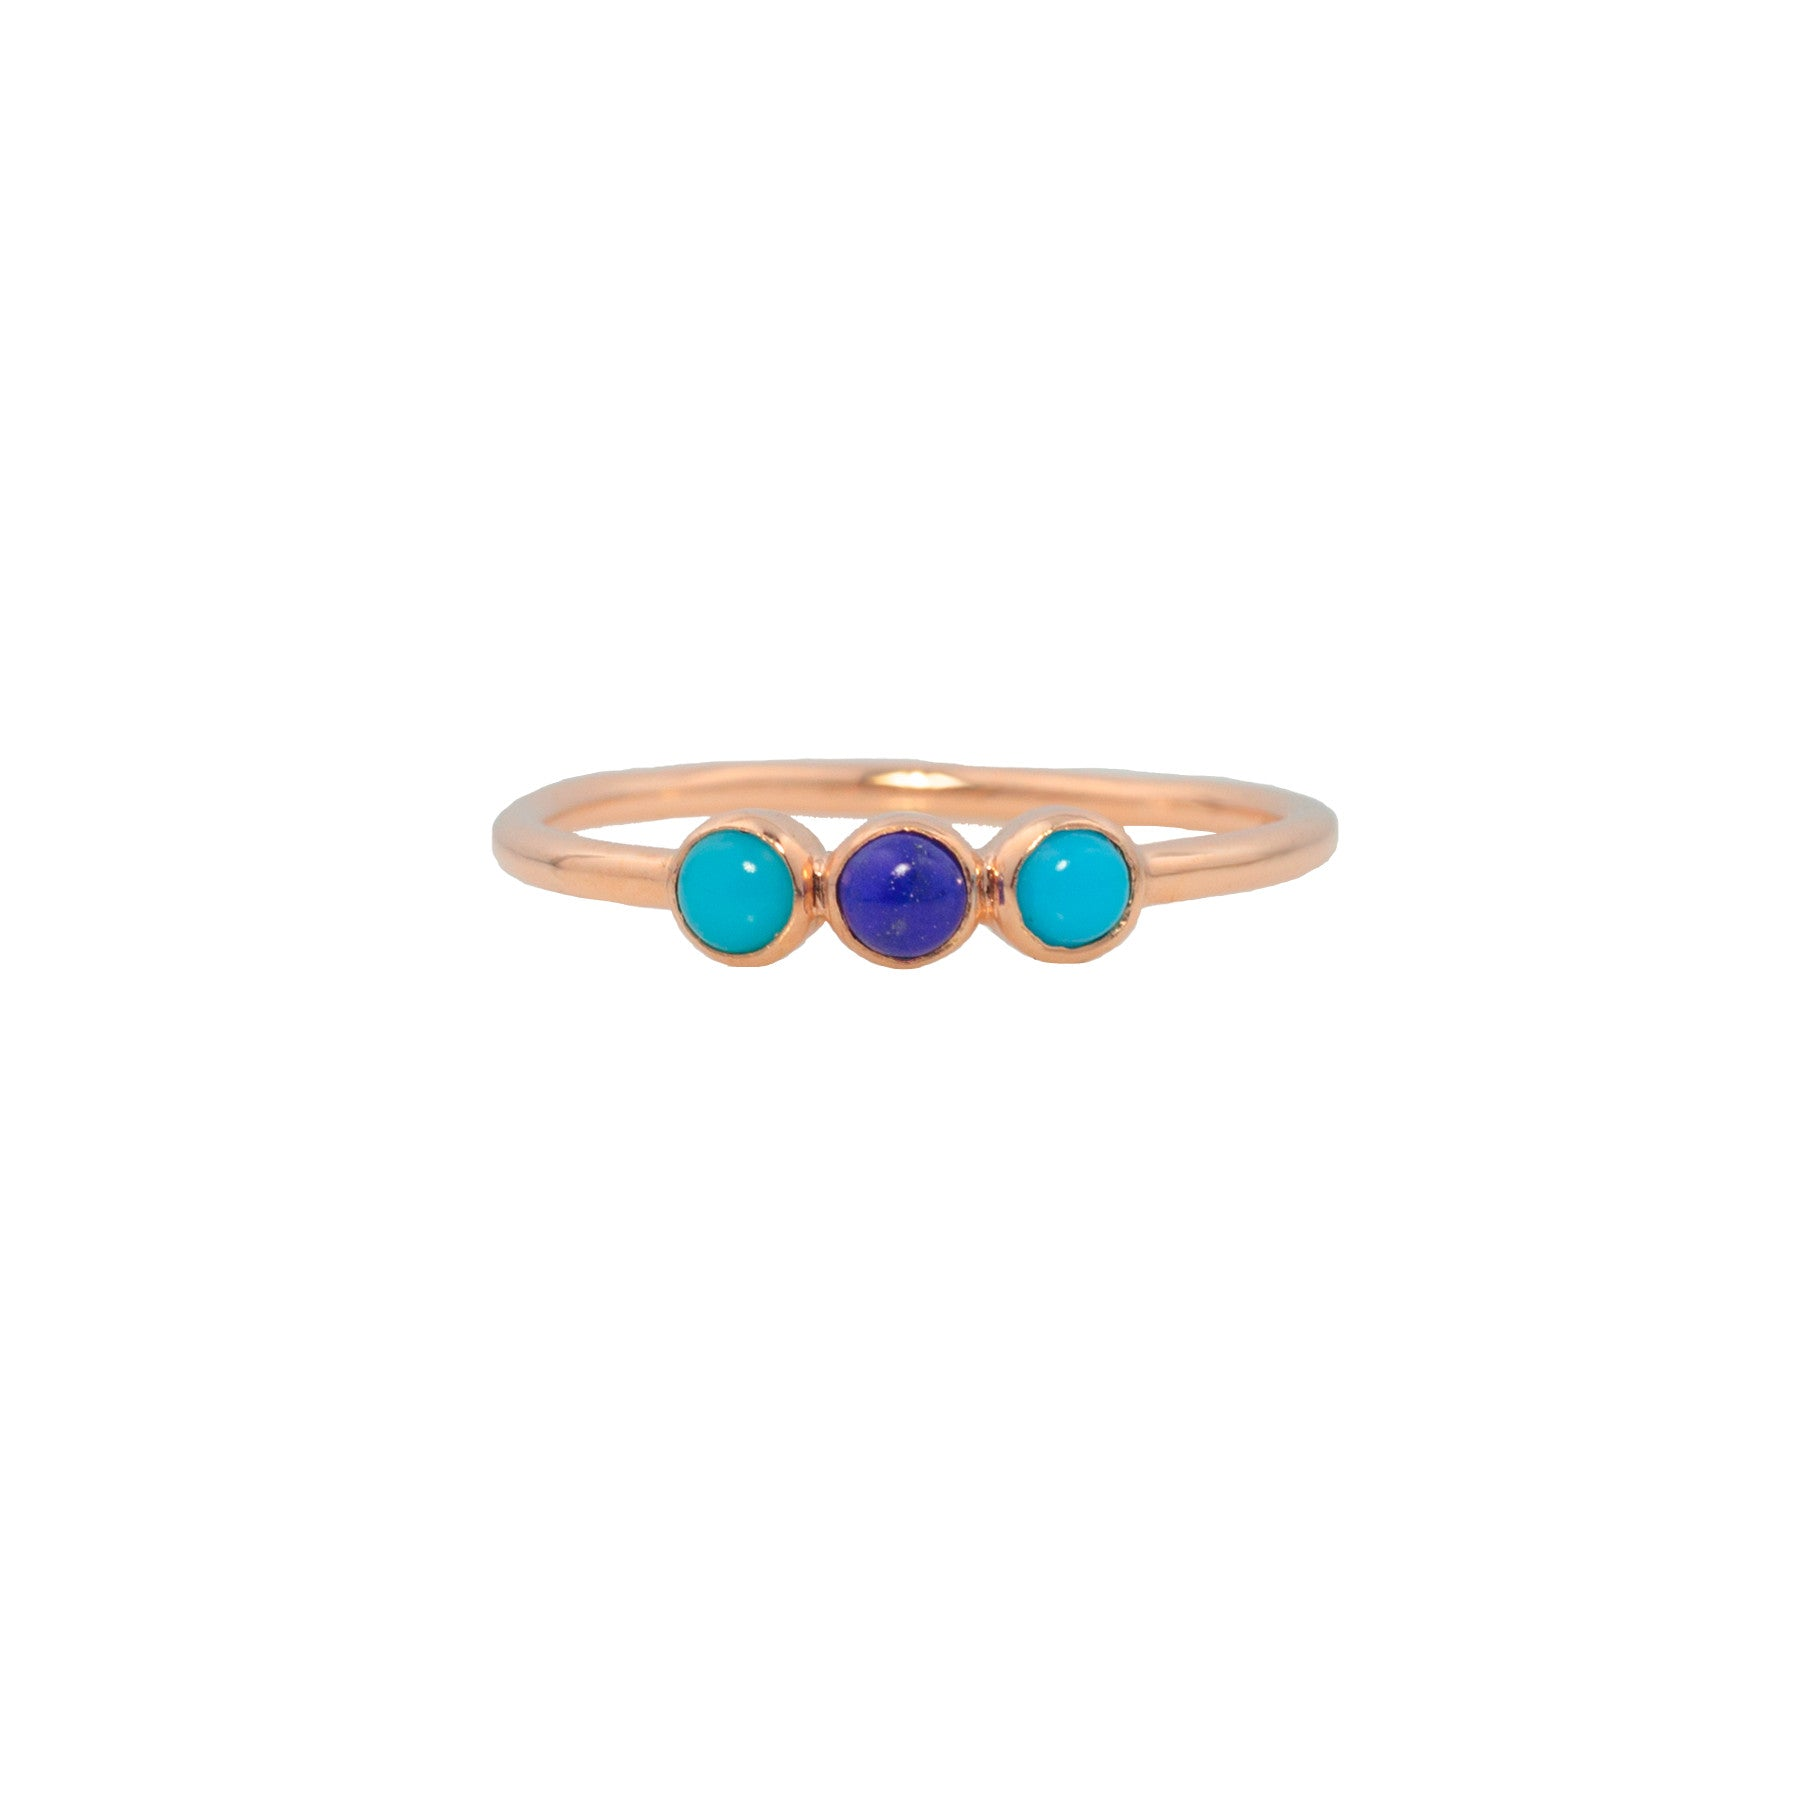 THREE SISTERS RING IN TURQUOISE AND LAPIS